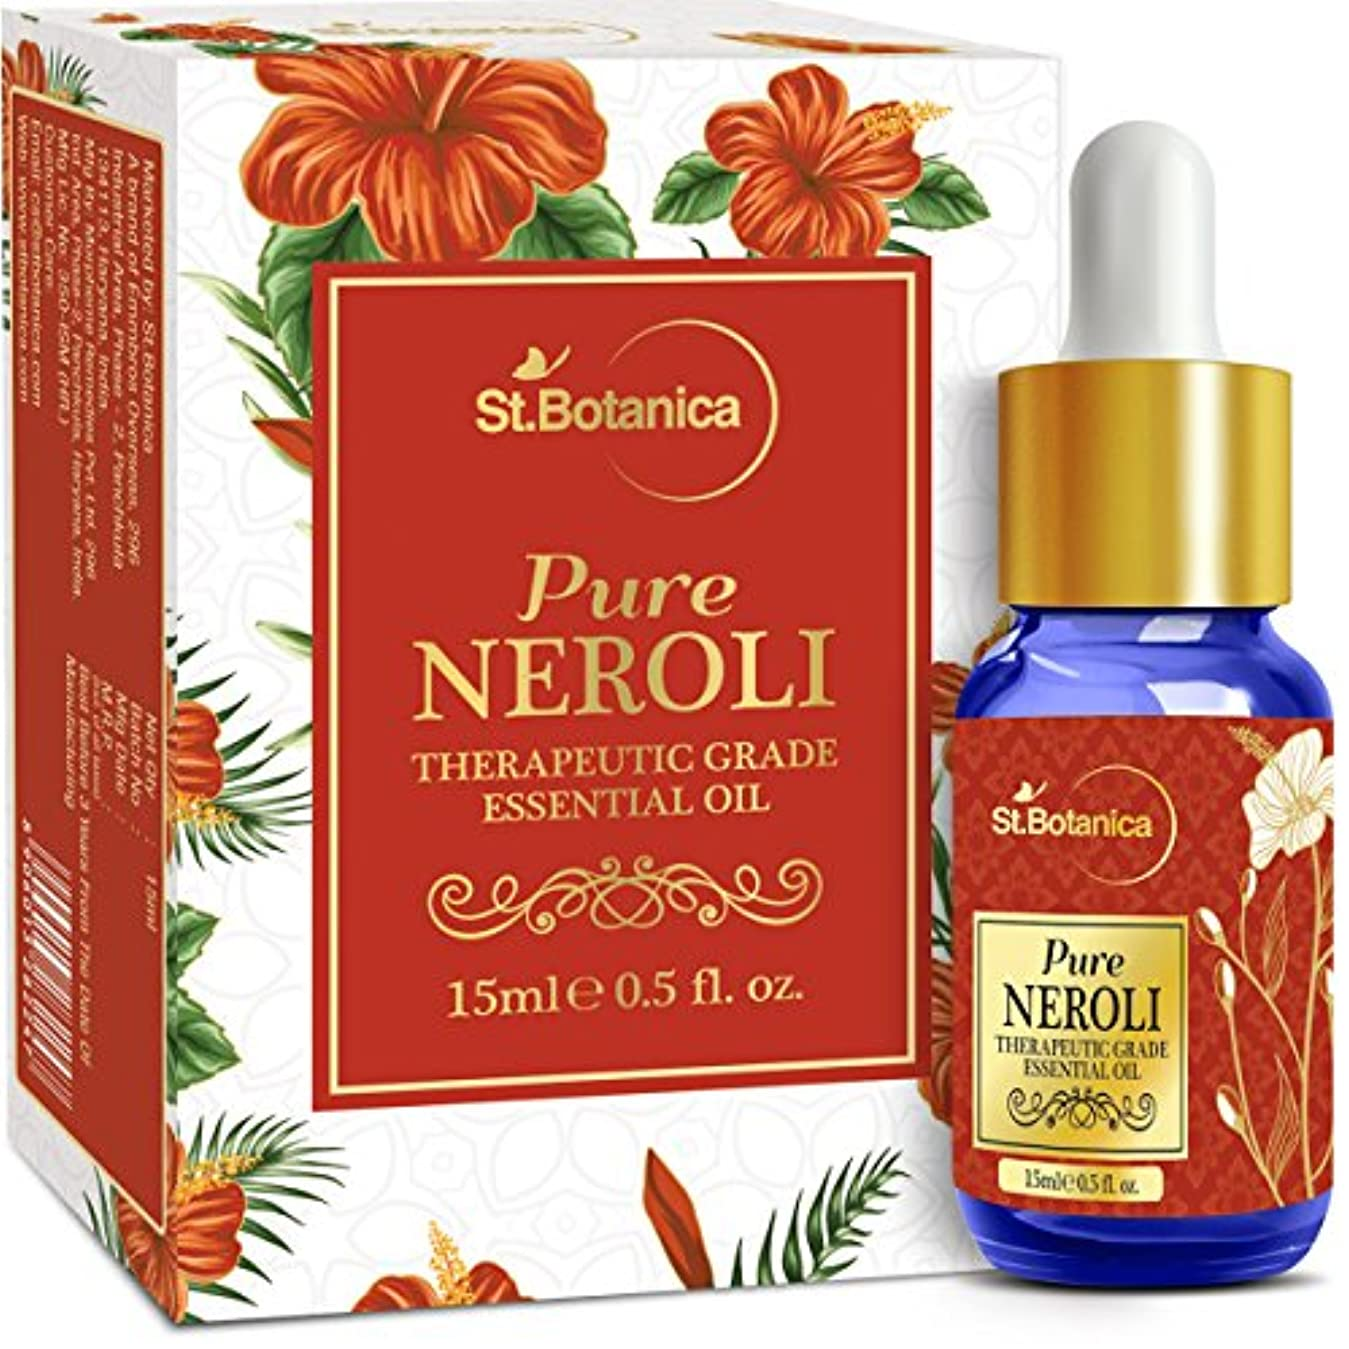 StBotanica Pure Neroli Pure Essential Oil, 15ml